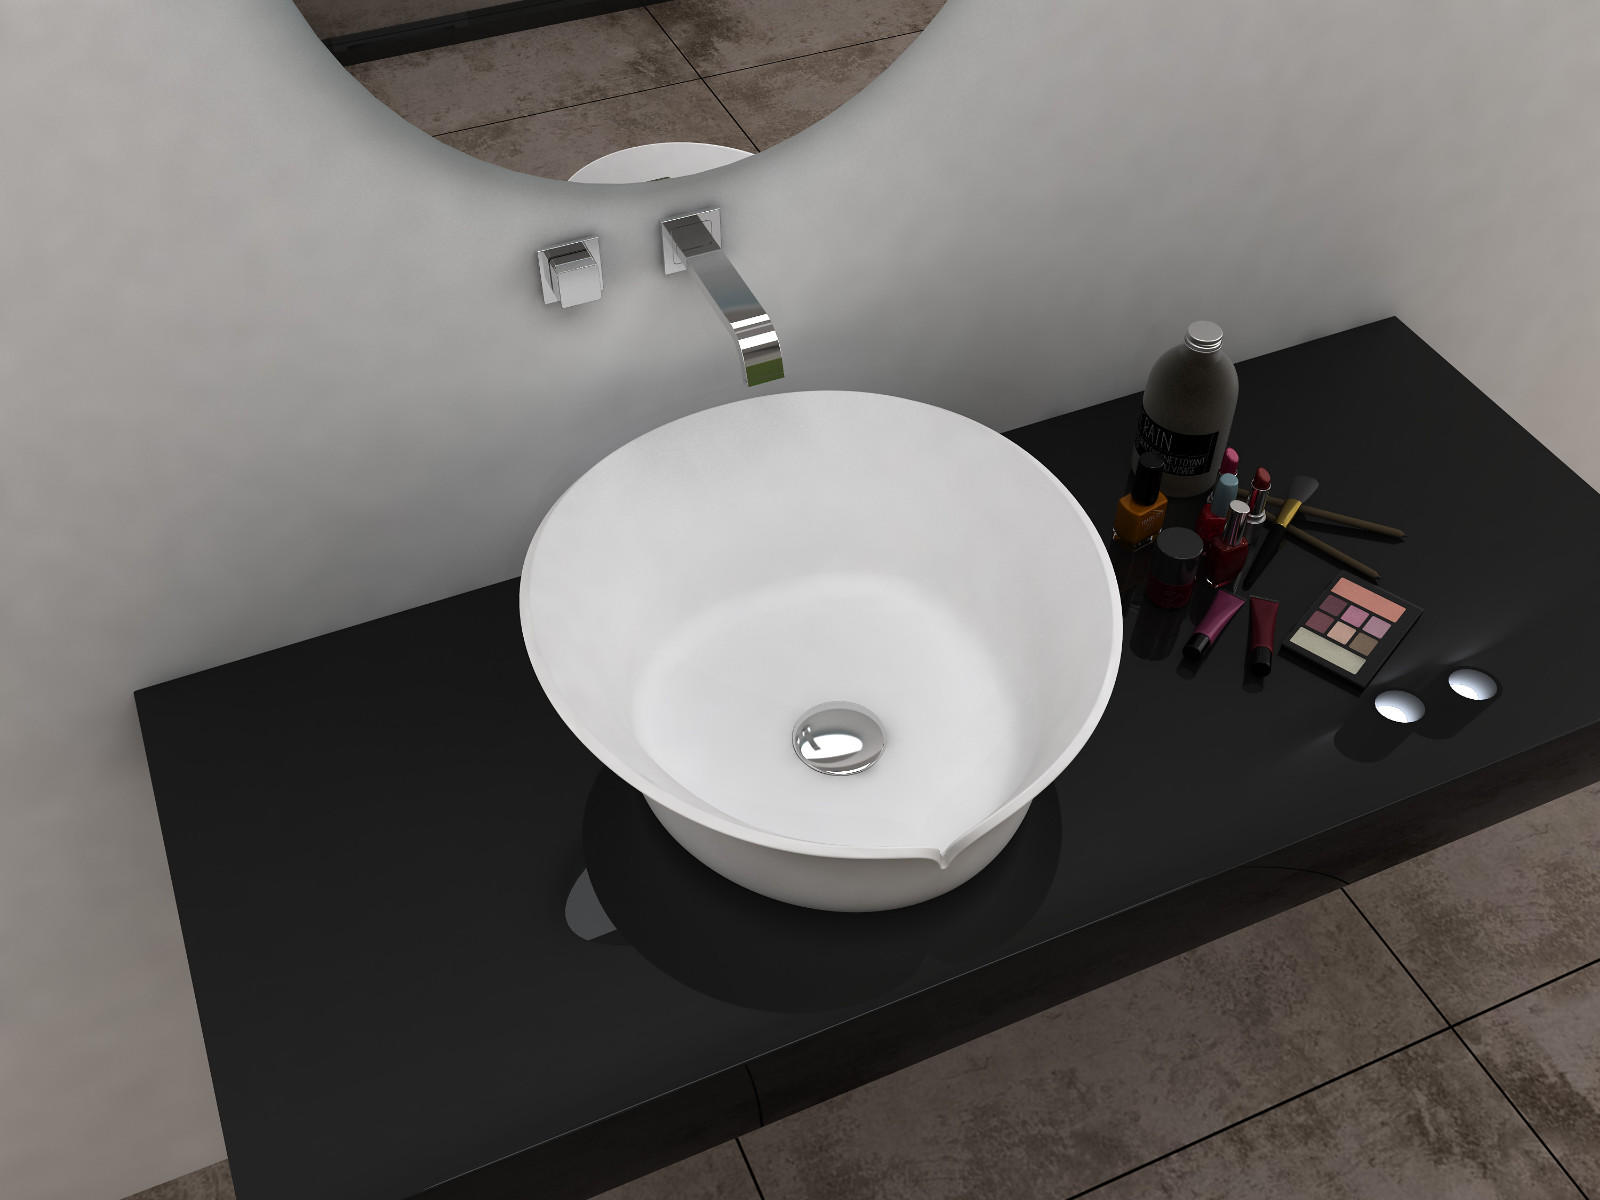 Bellissimo-Find Manufacture About Unique Design Solid Surface Countertop Wash Basin